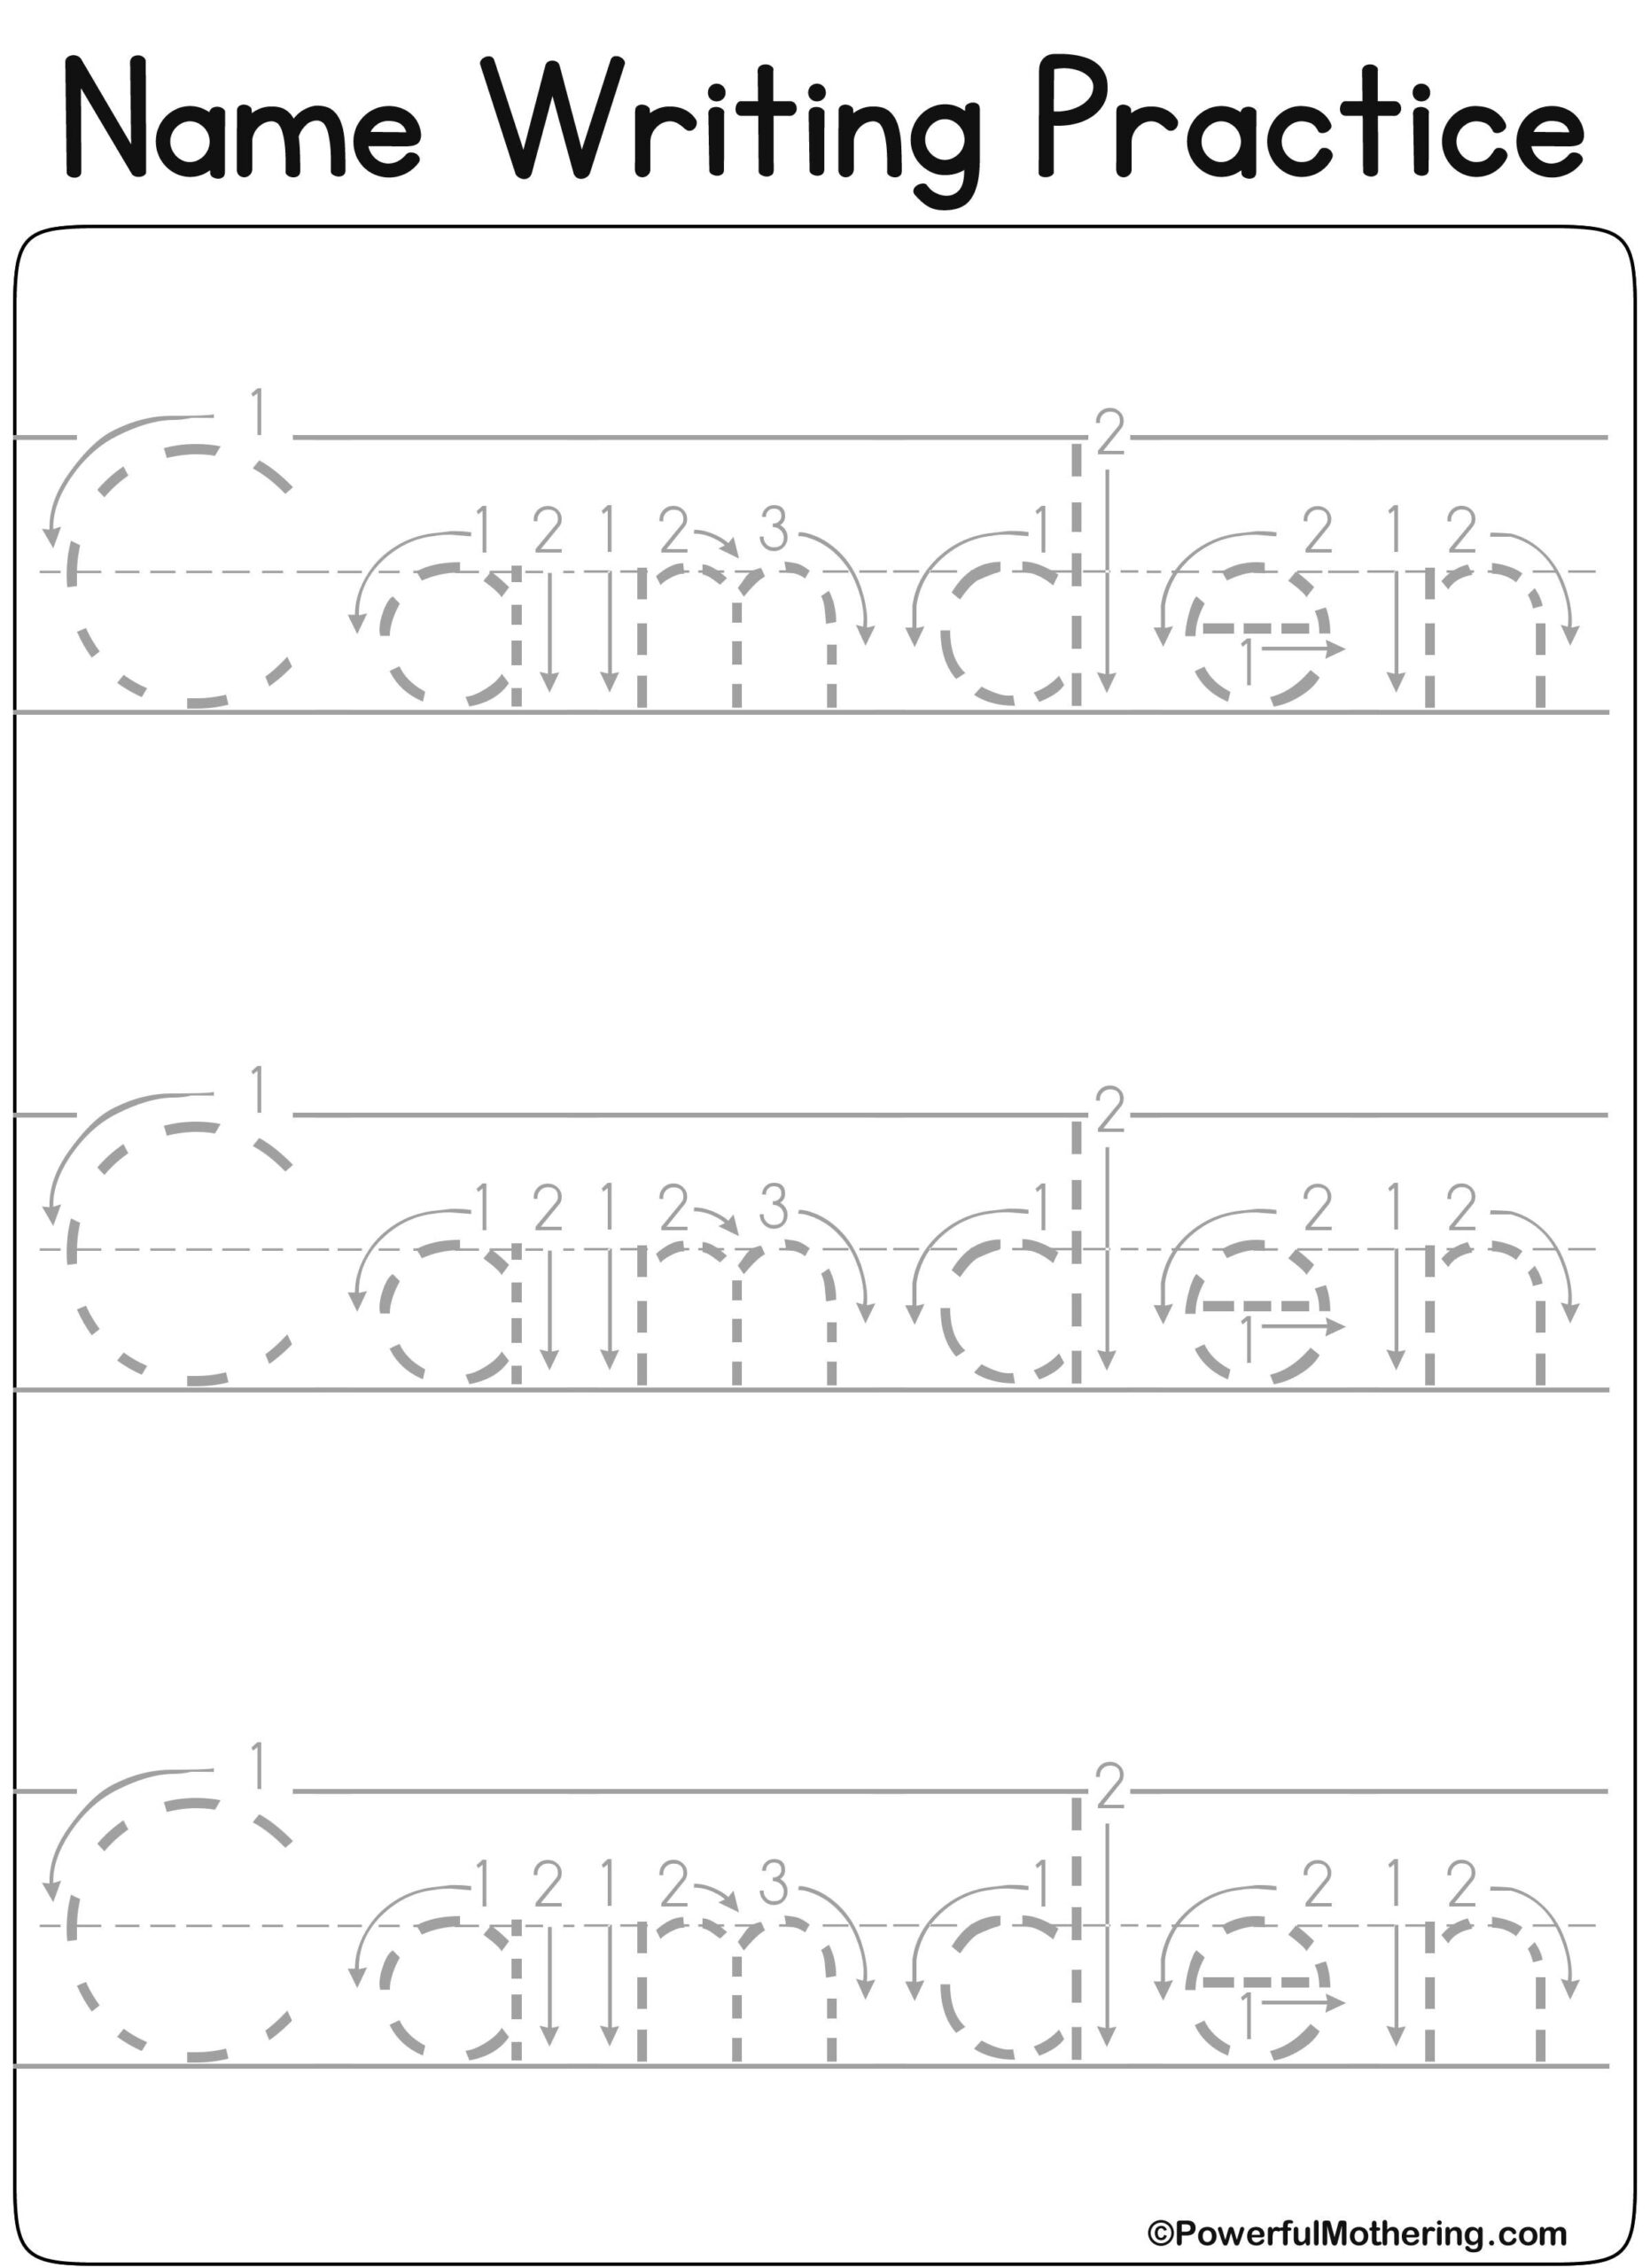 Www.createprintables Custom_Name_Get.php?text&#x3D throughout Name.tracing